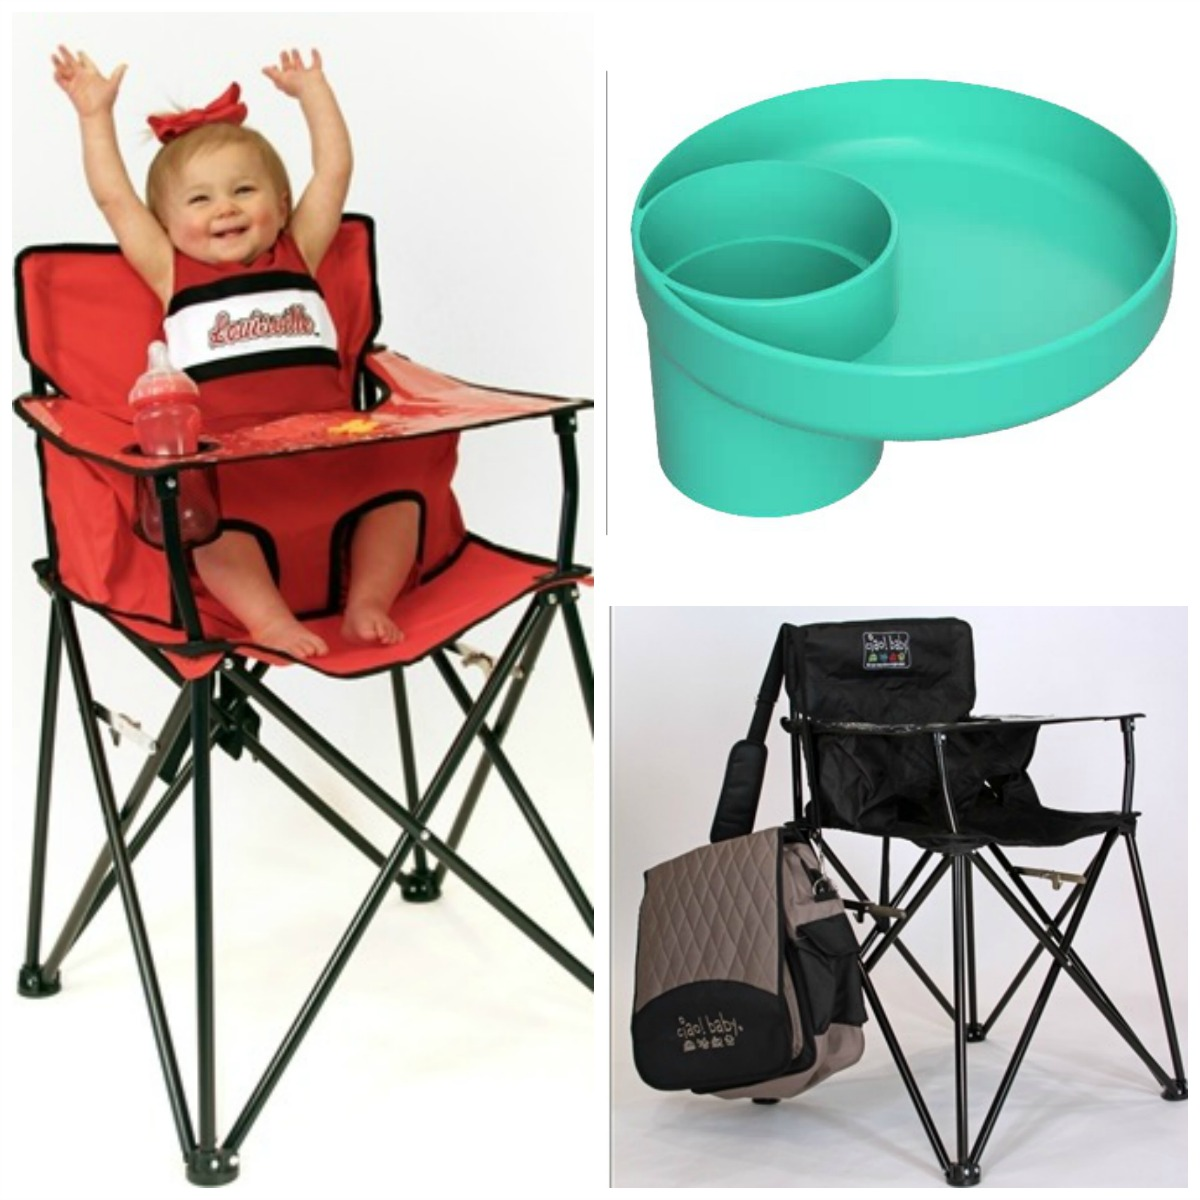 outdoor baby portable high chair folding desk comfy seating by ciao beautiful touches